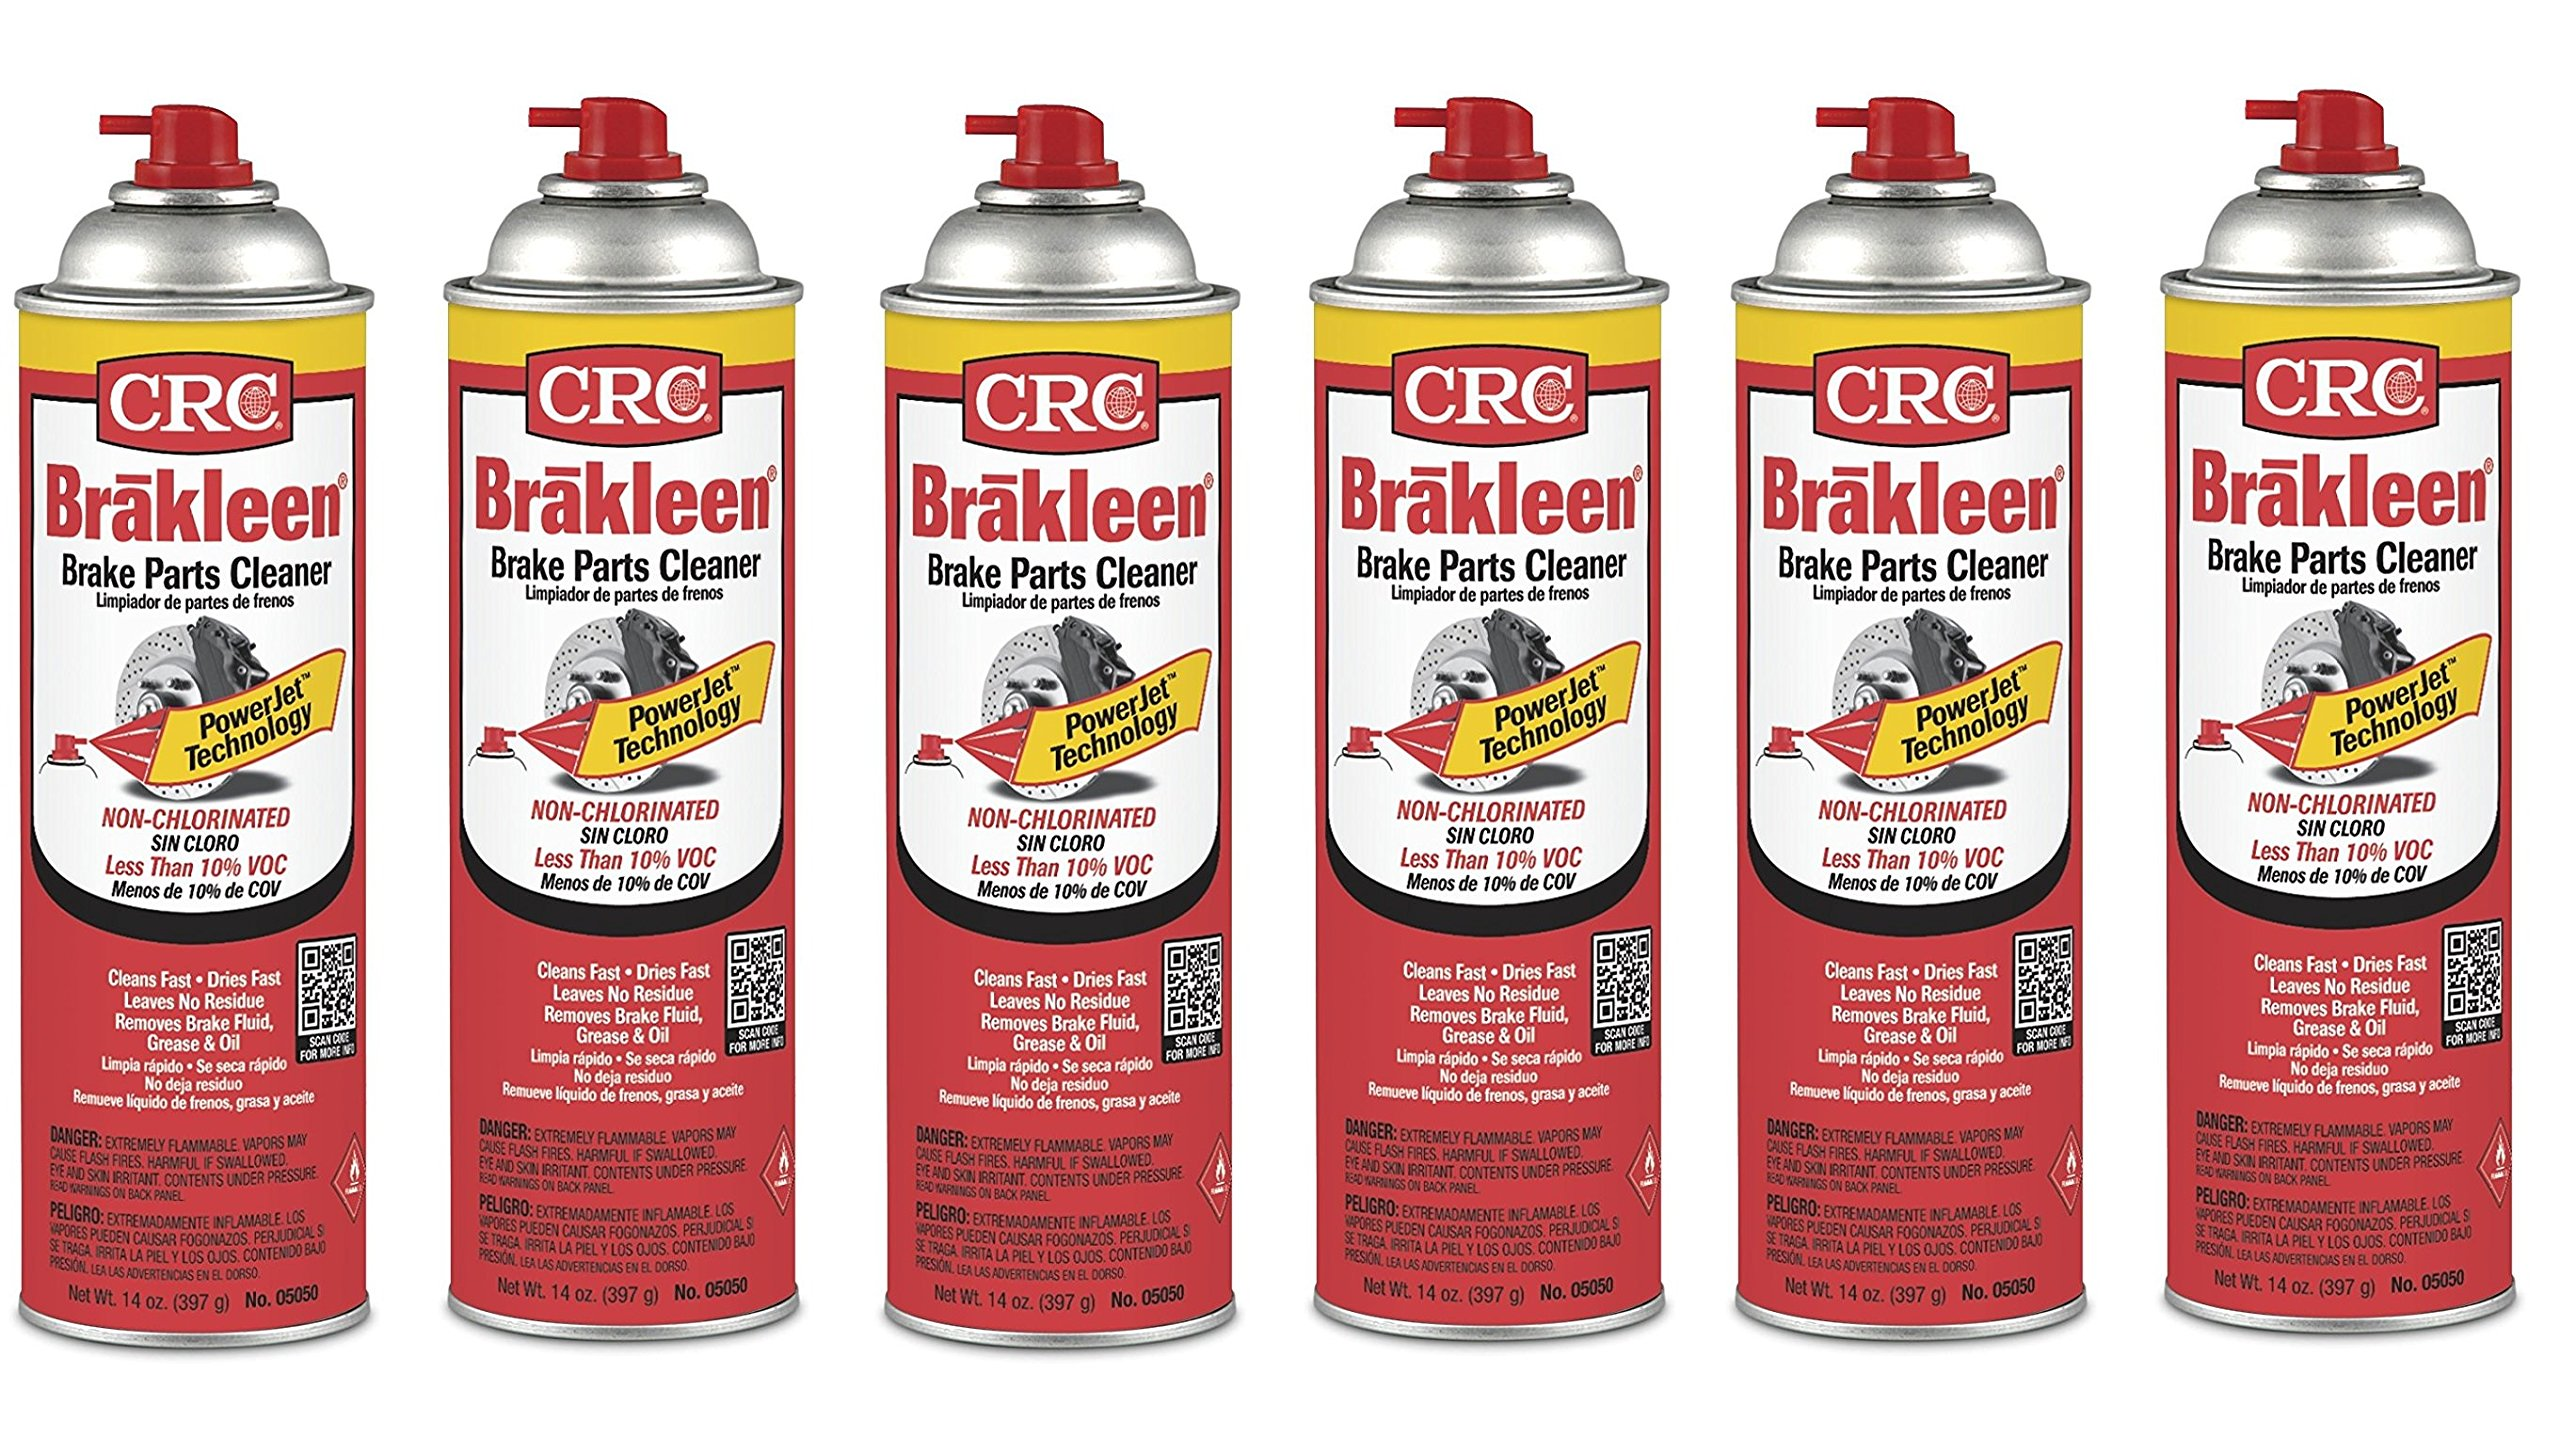 CRC Brakleen® 05050 Brake Parts Cleaner - 50 State Formula with PowerJet Technology (6)